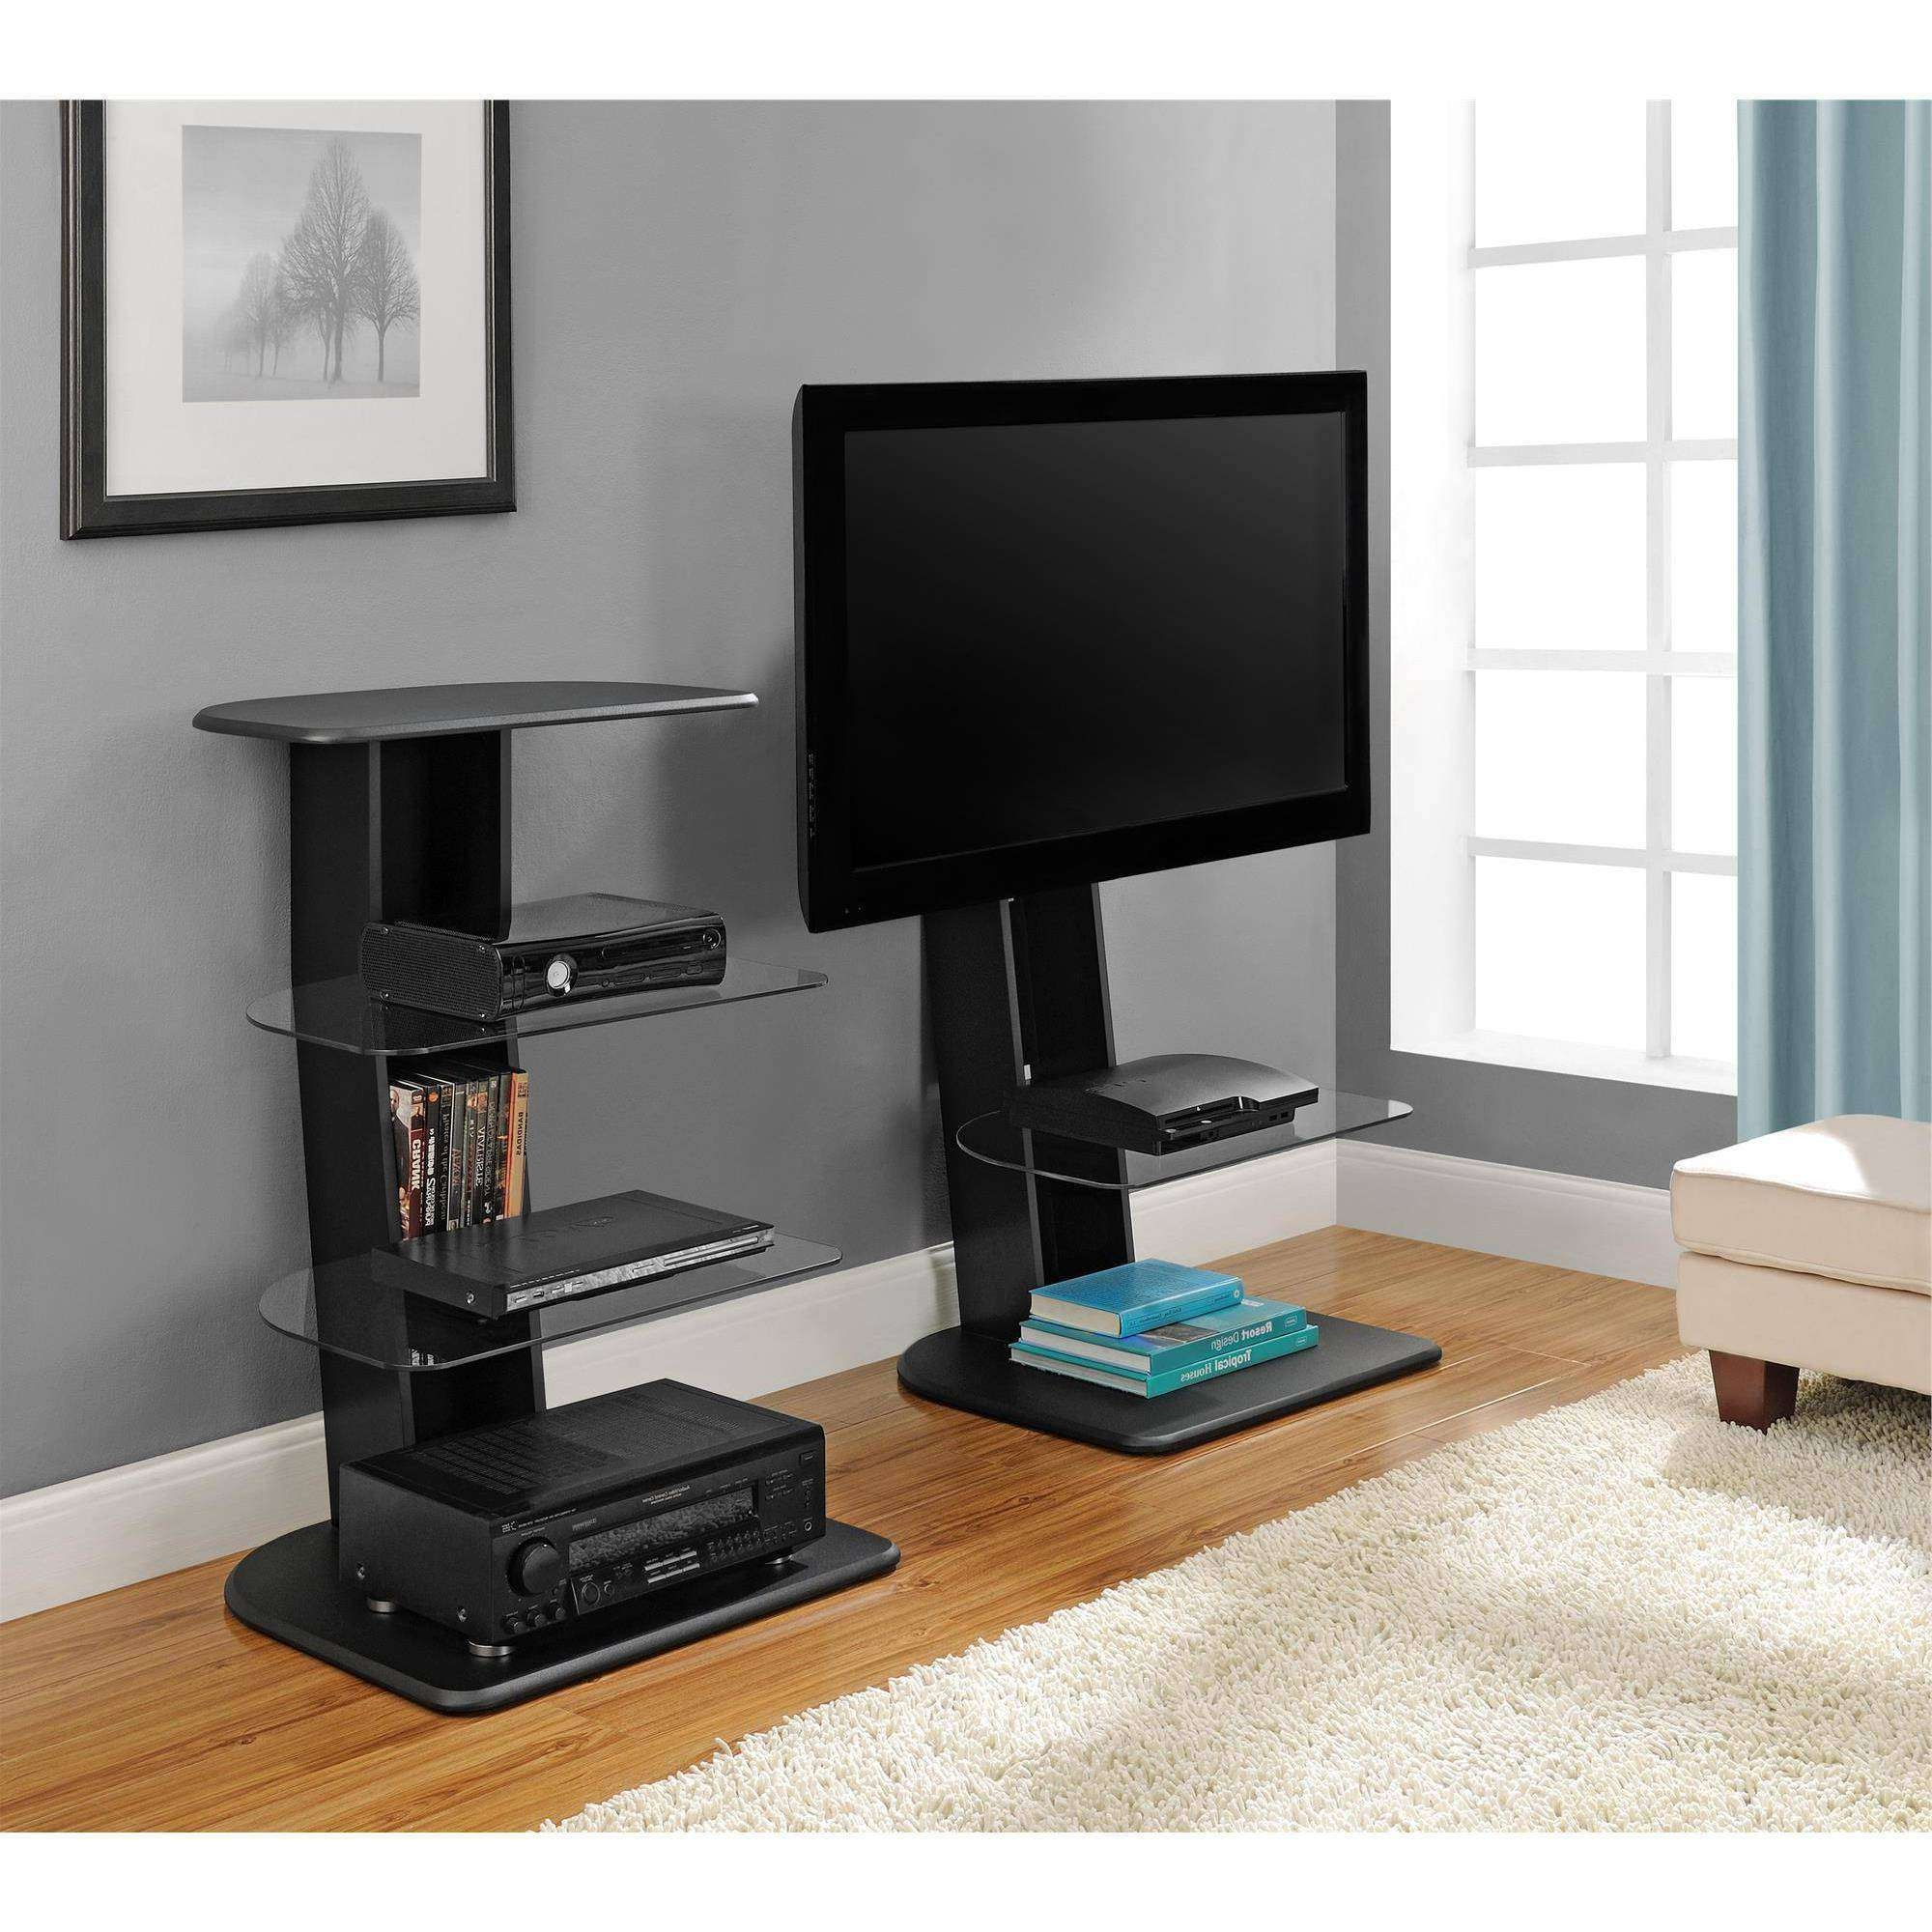 Jolly Mirror Base Together With Chintaly Imports Swivel Tempered Intended For Wood Tv Stands With Swivel Mount (View 6 of 15)